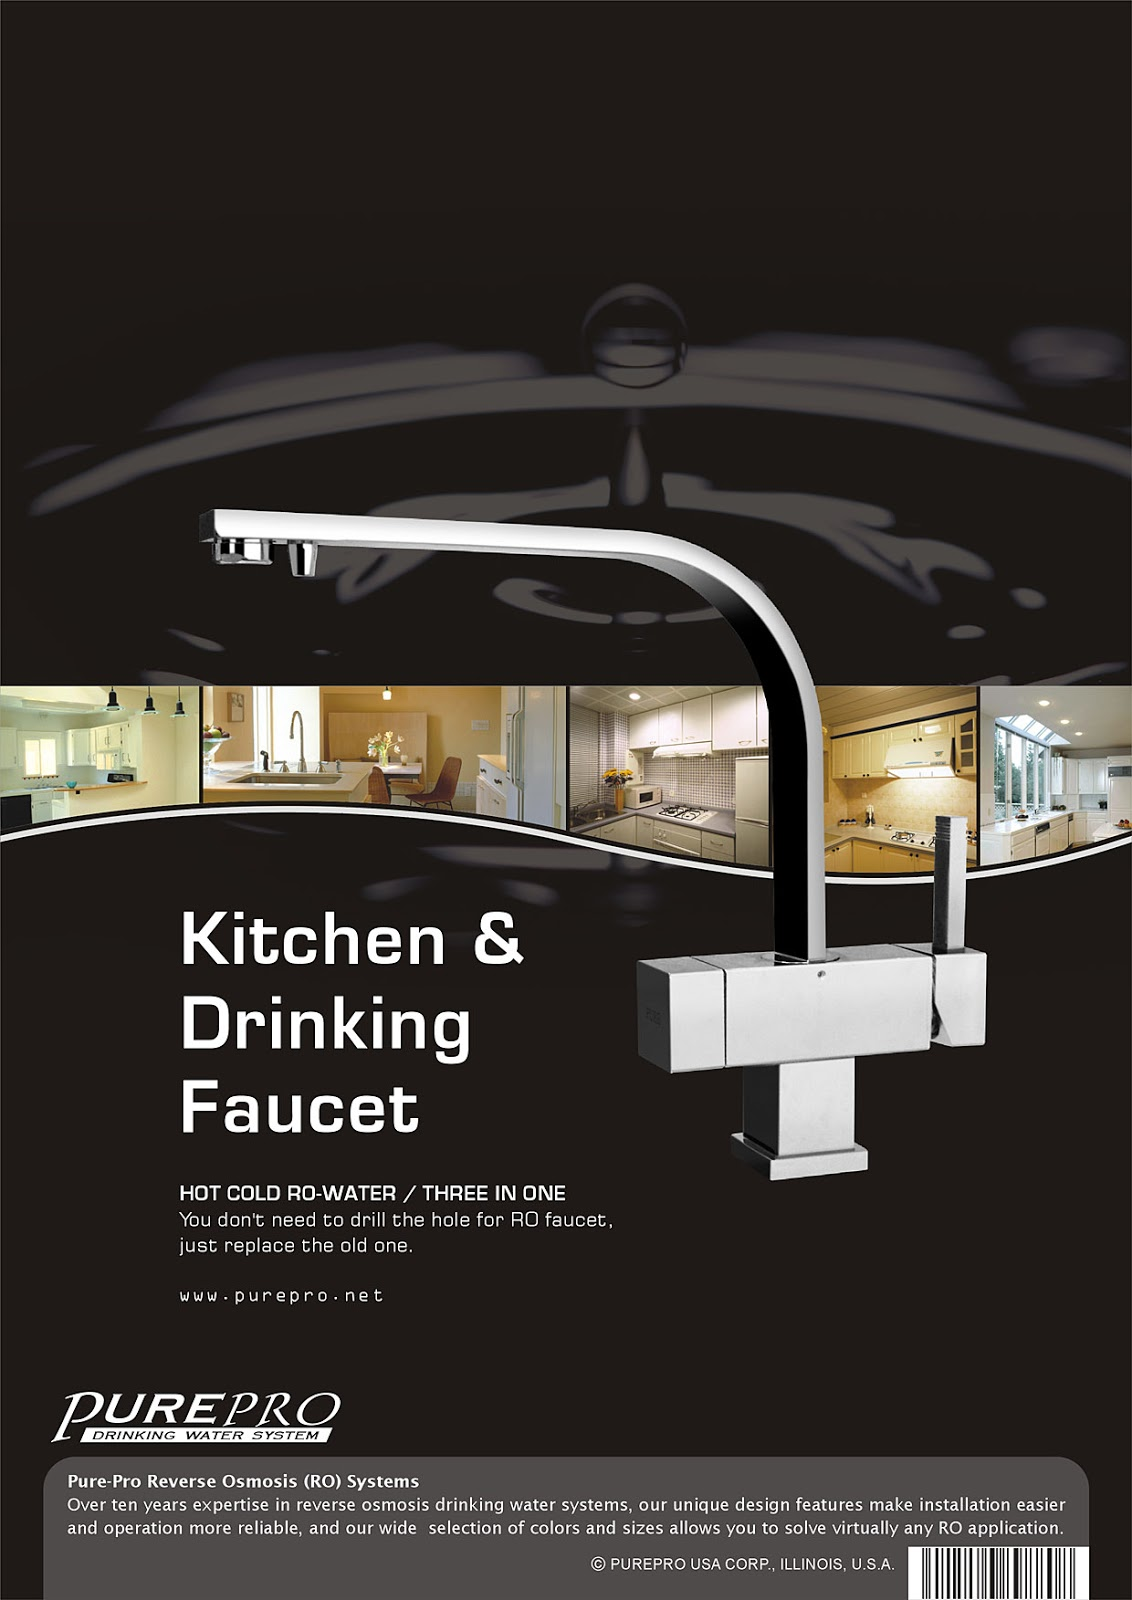 PurePro ® USA Kitchen & Drinking Faucet Part #215 Tree in One RO Faucet